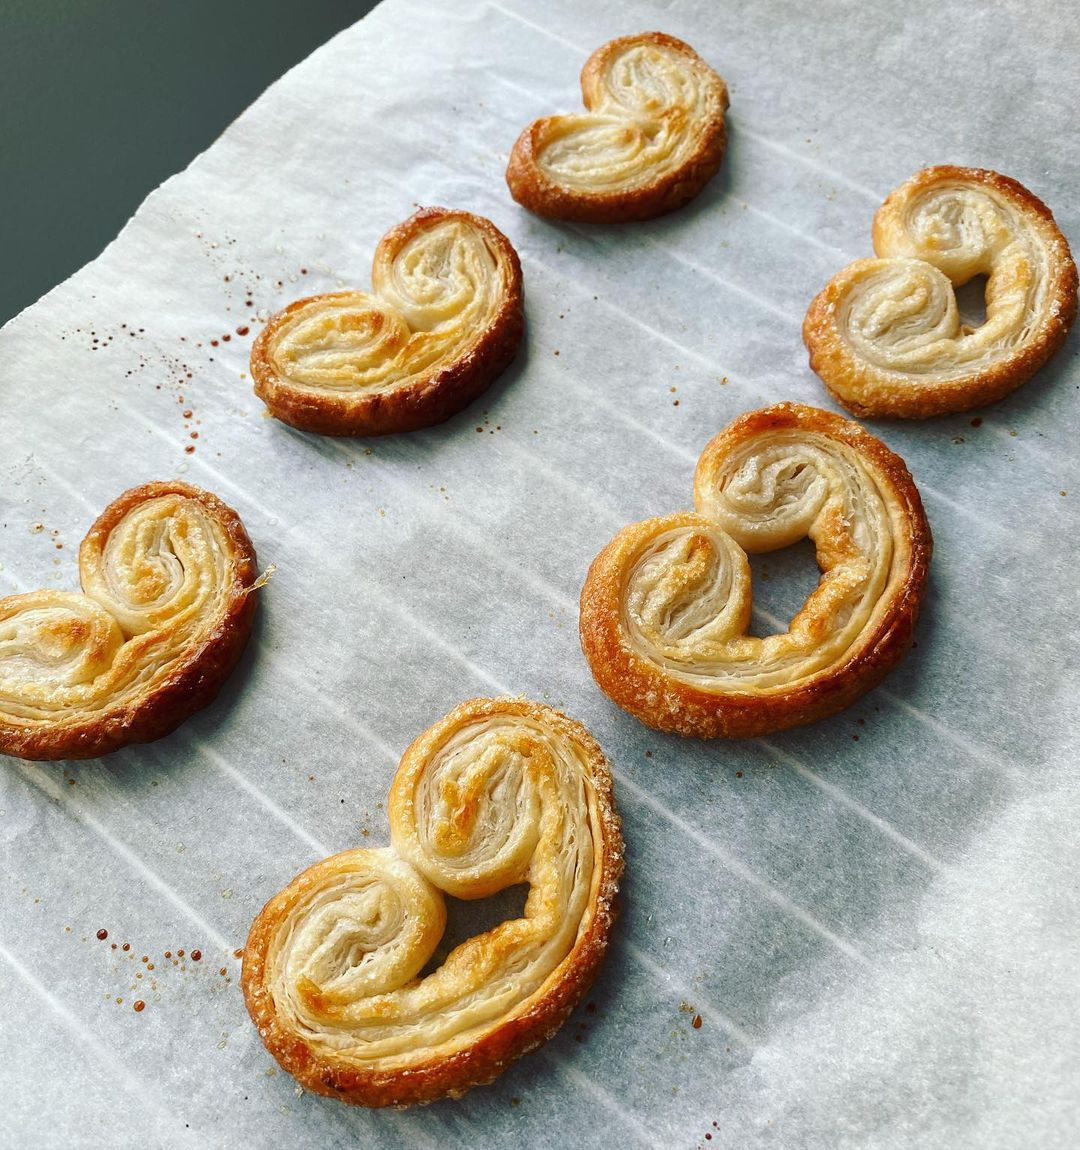 Heart palmiers on waxed paper - @cooking._.madness